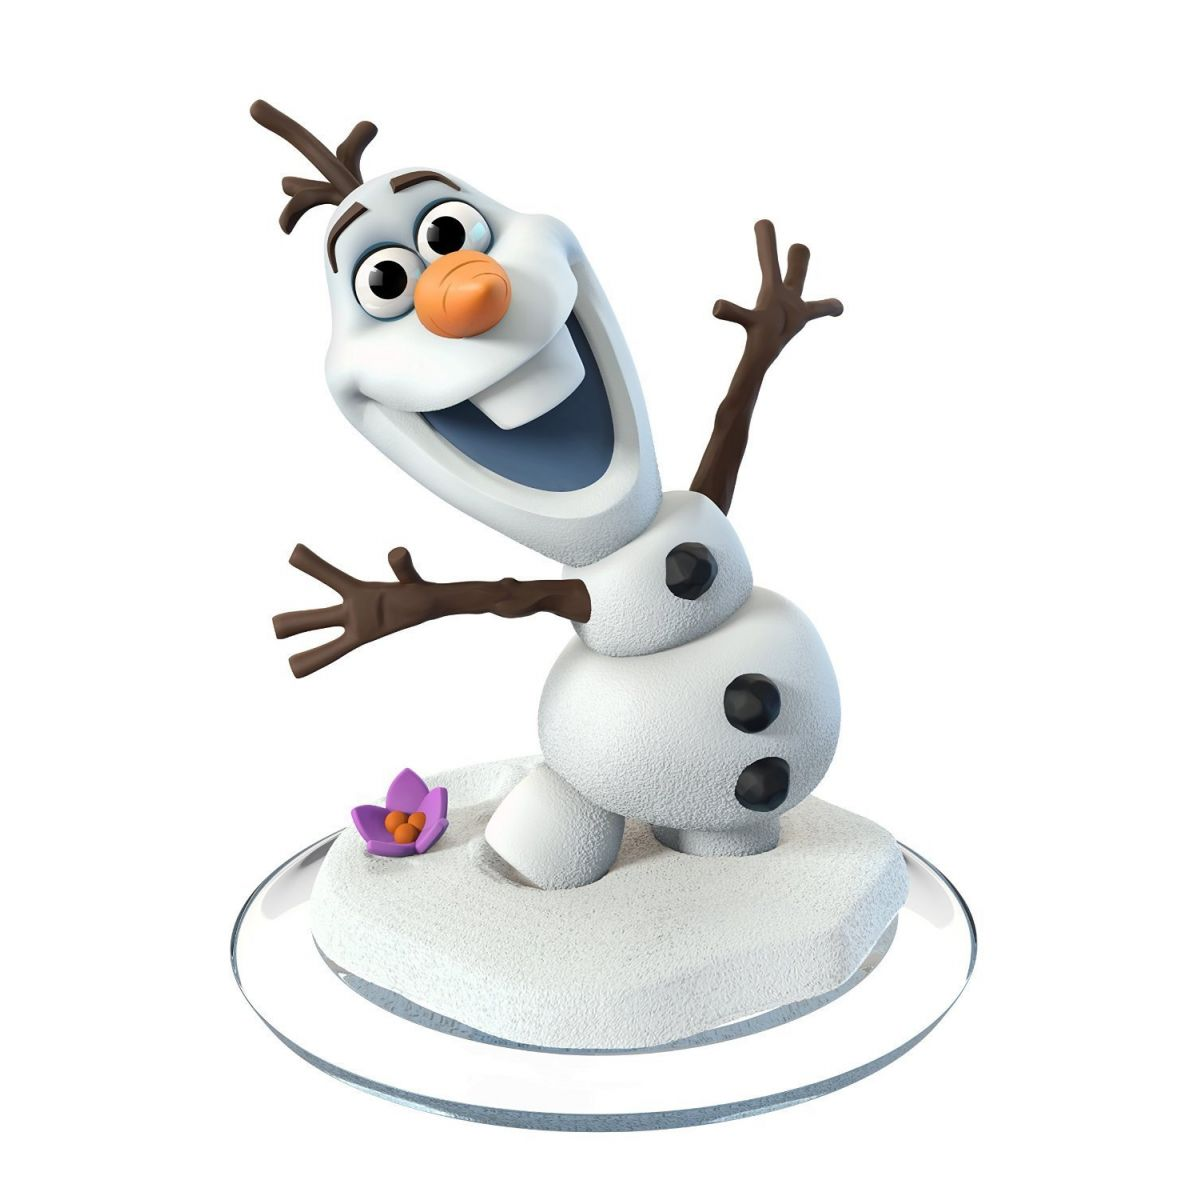 Disney INFINITY: 3.0 Edition - Olaf Figure - Movie Freaks Collectibles